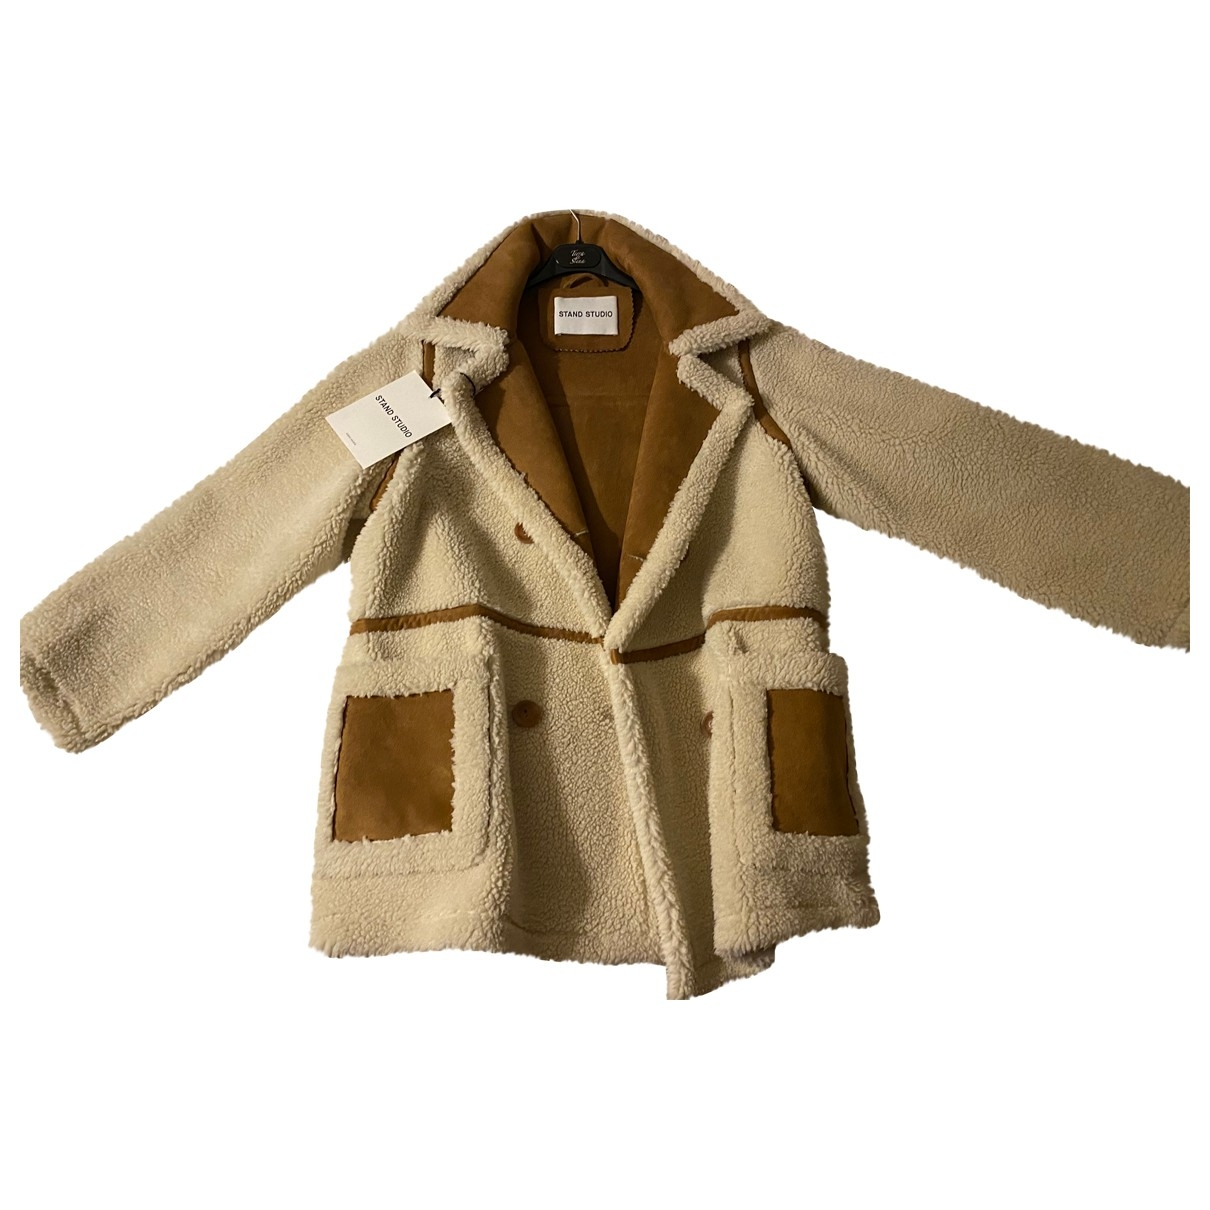 Stand Studio \N Beige jacket for Women 38 FR